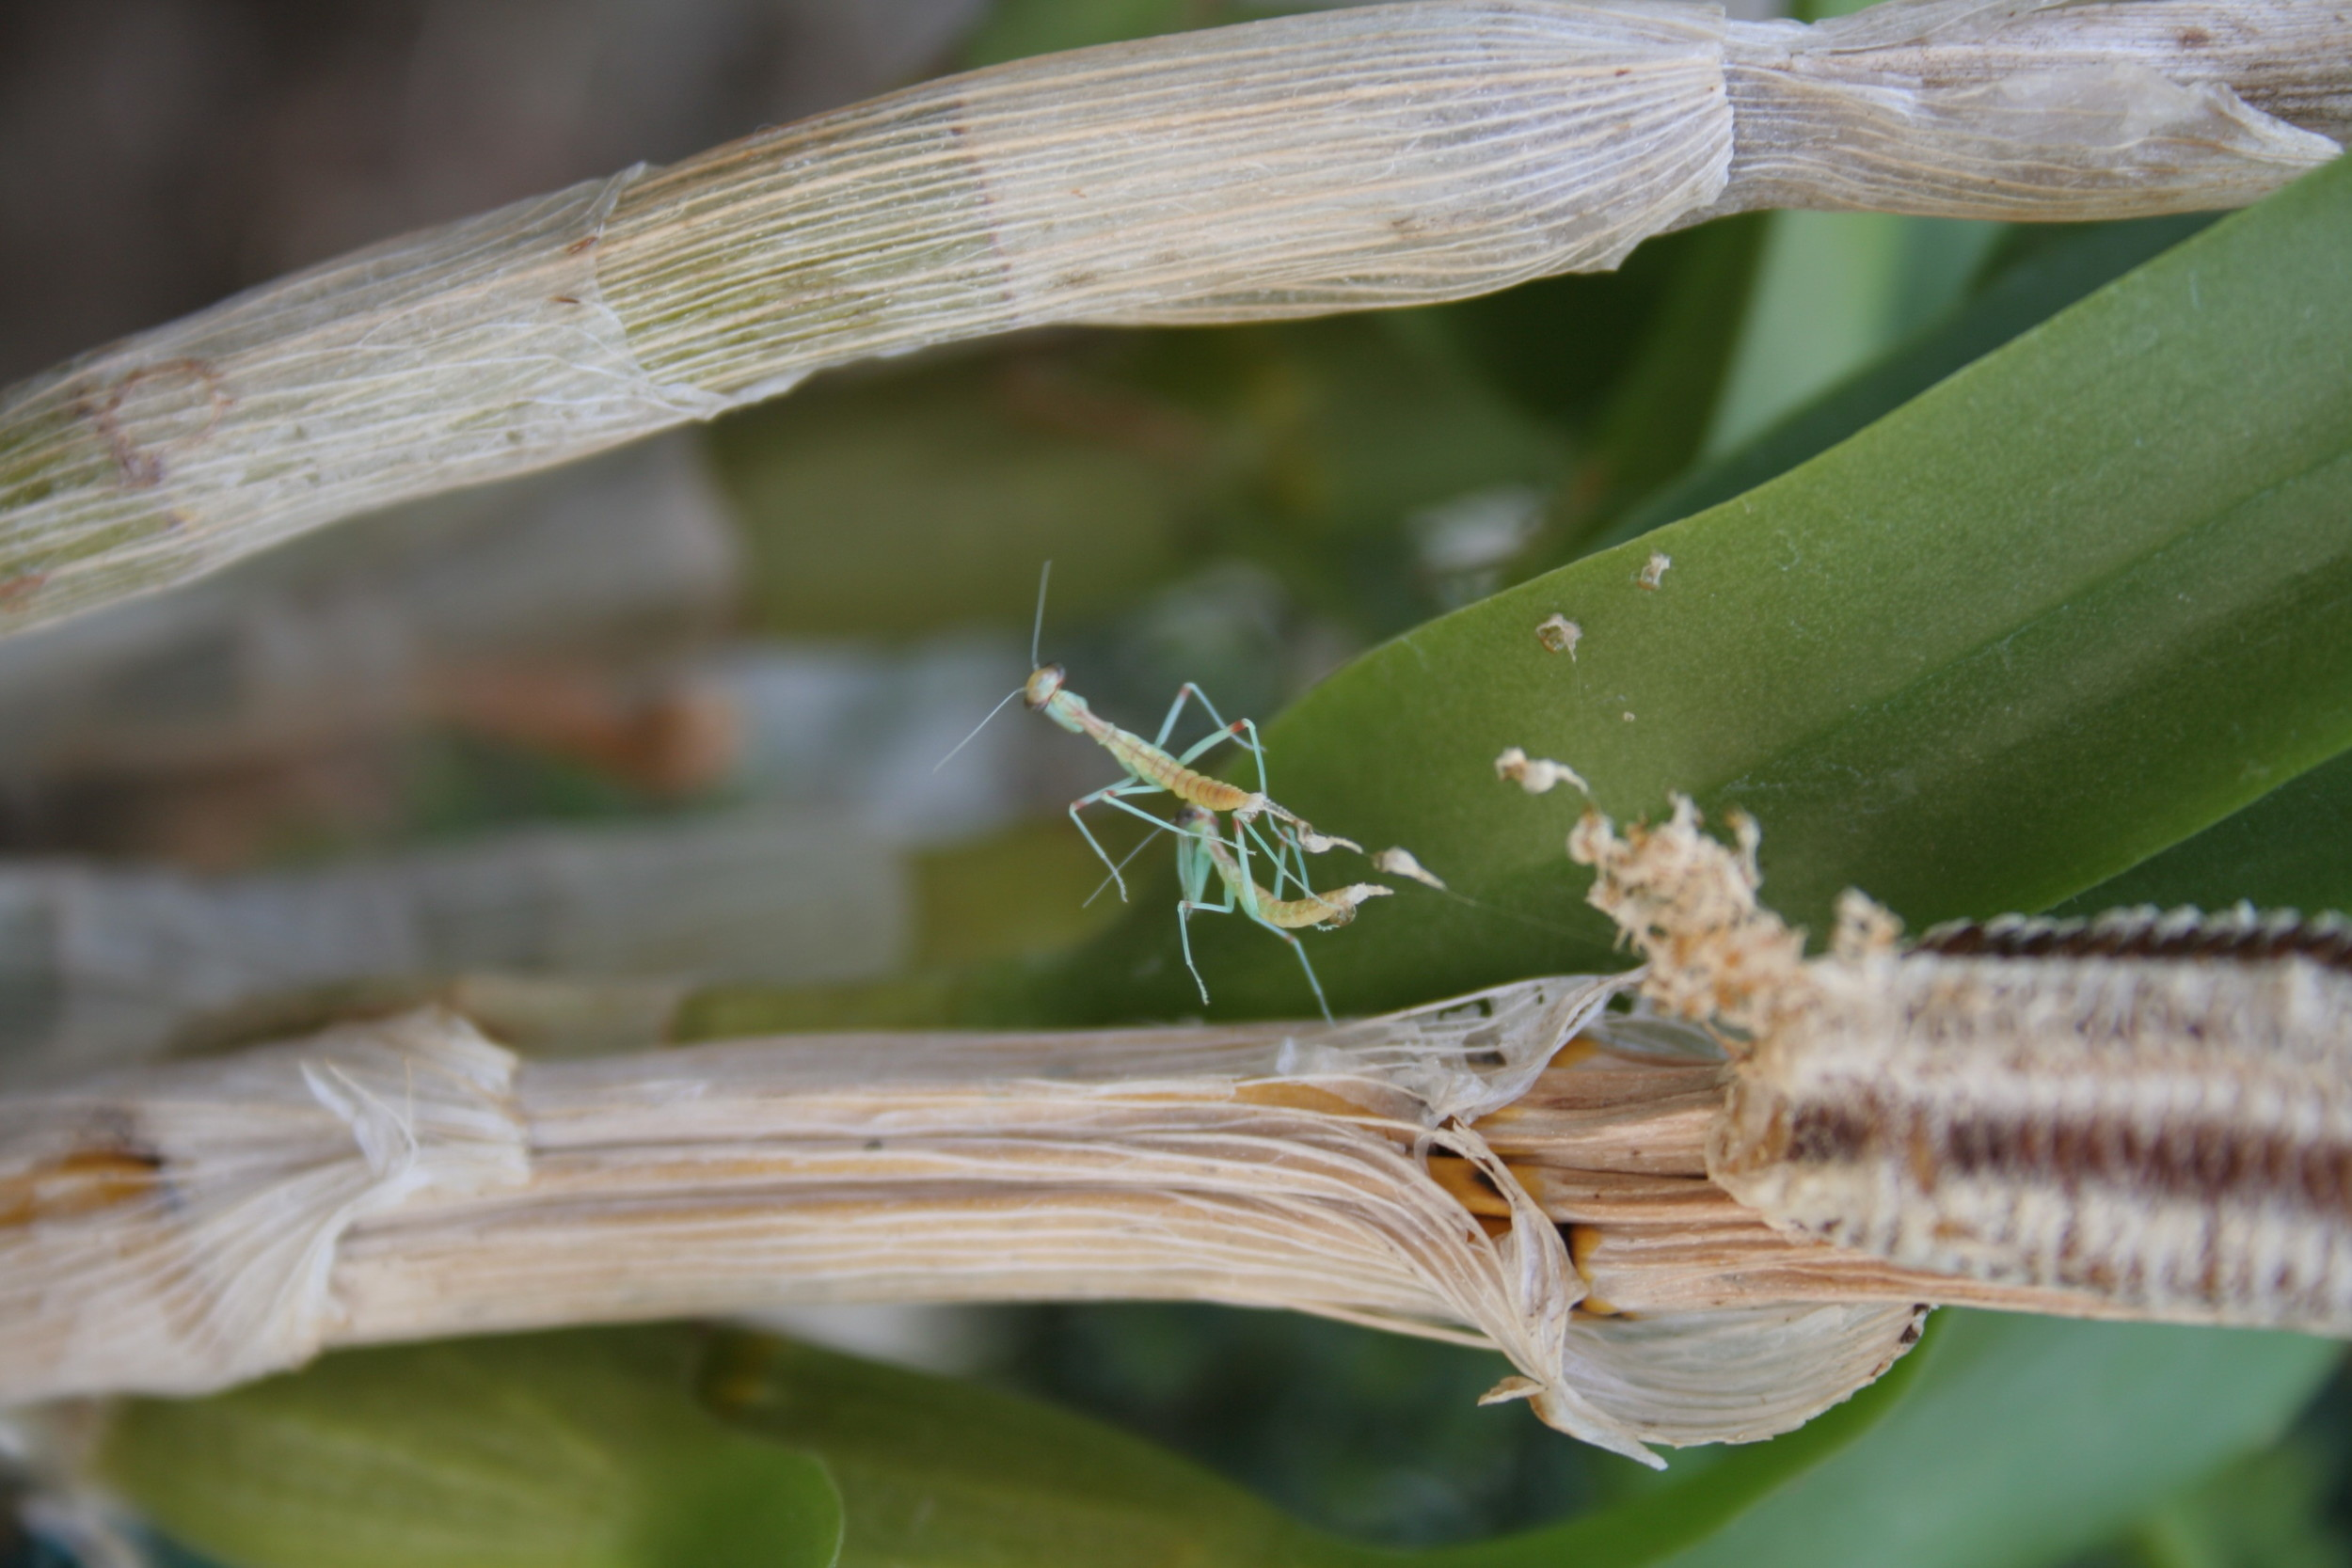 Hatching preying mantis repel out of the egg sac